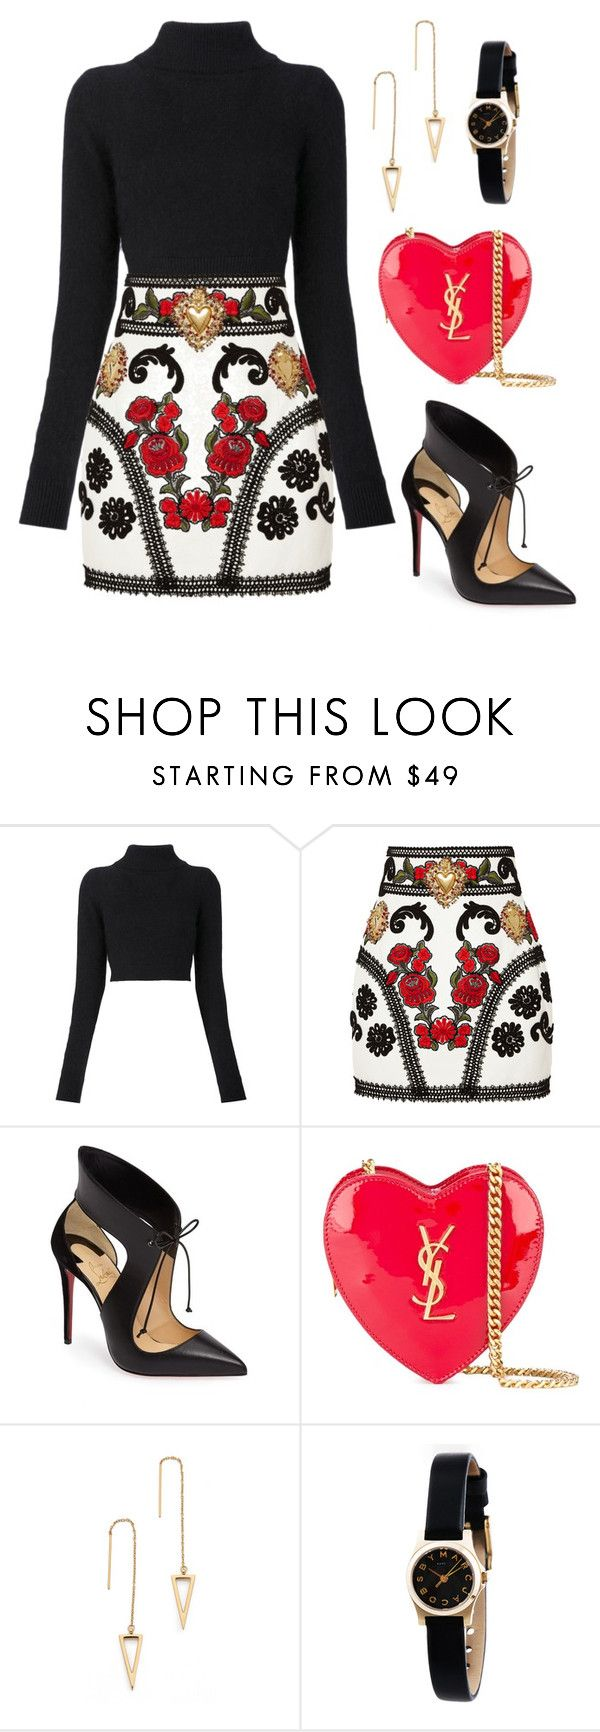 """""""Untitled #121"""" by tazkiasaras ❤ liked on Polyvore featuring Balmain, Dolce&Gabbana, Christian Louboutin, Yves Saint Laurent, Rebecca Minkoff and Marc by Marc Jacobs"""